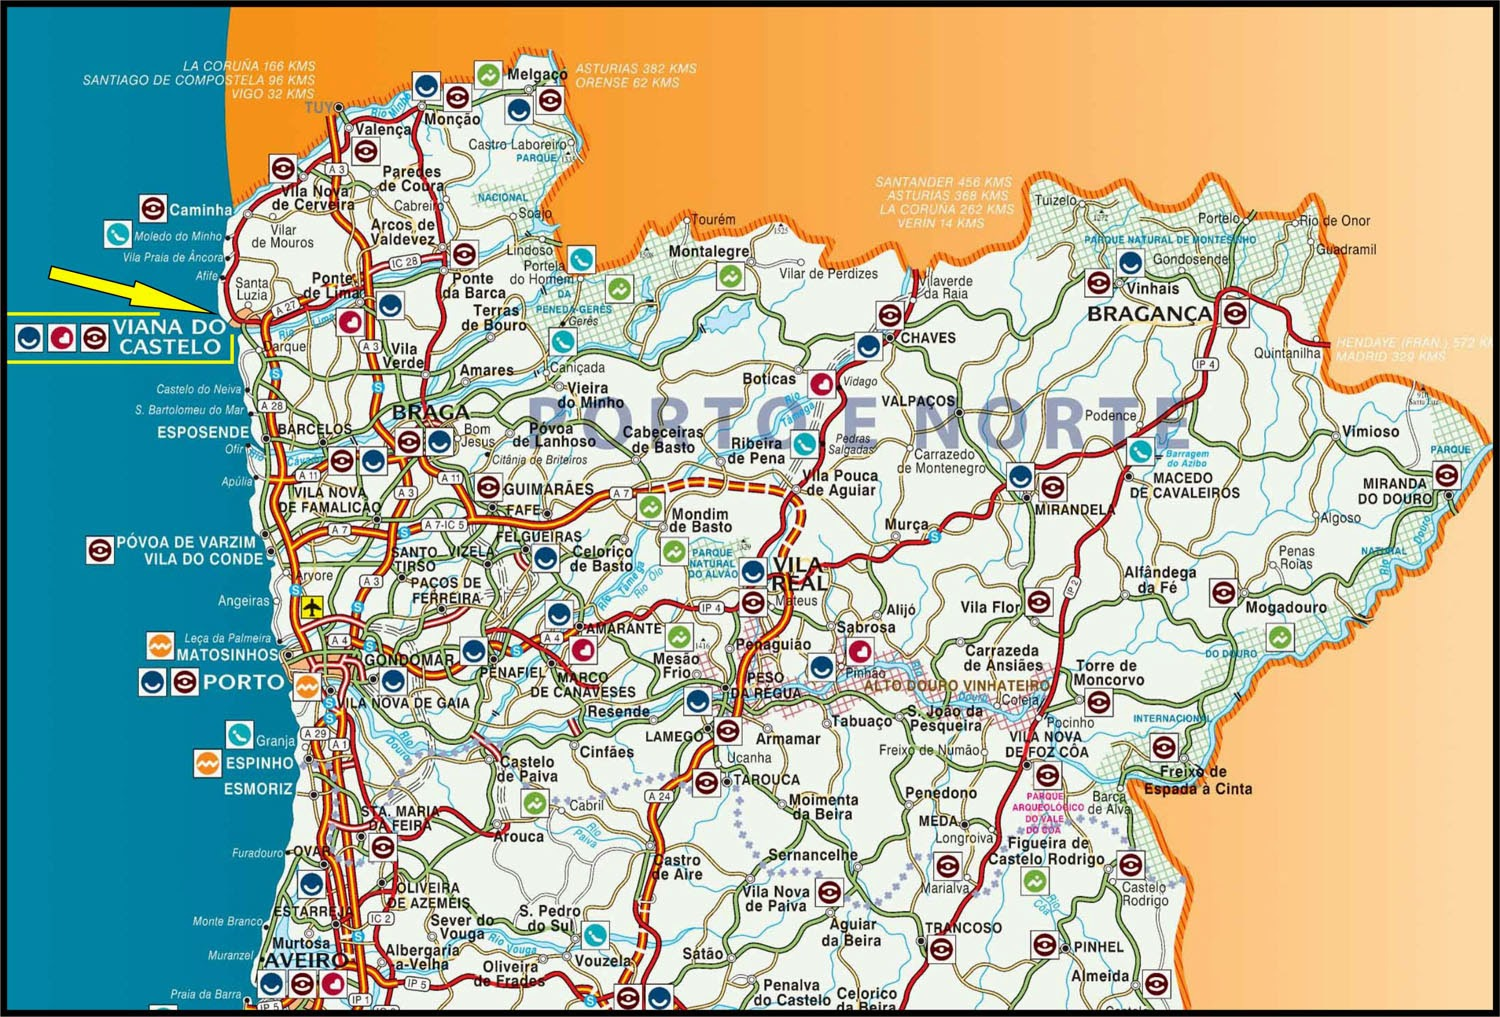 mapa das praias do norte de portugal Mapas de Viana do Castelo   Portugal | MapasBlog mapa das praias do norte de portugal